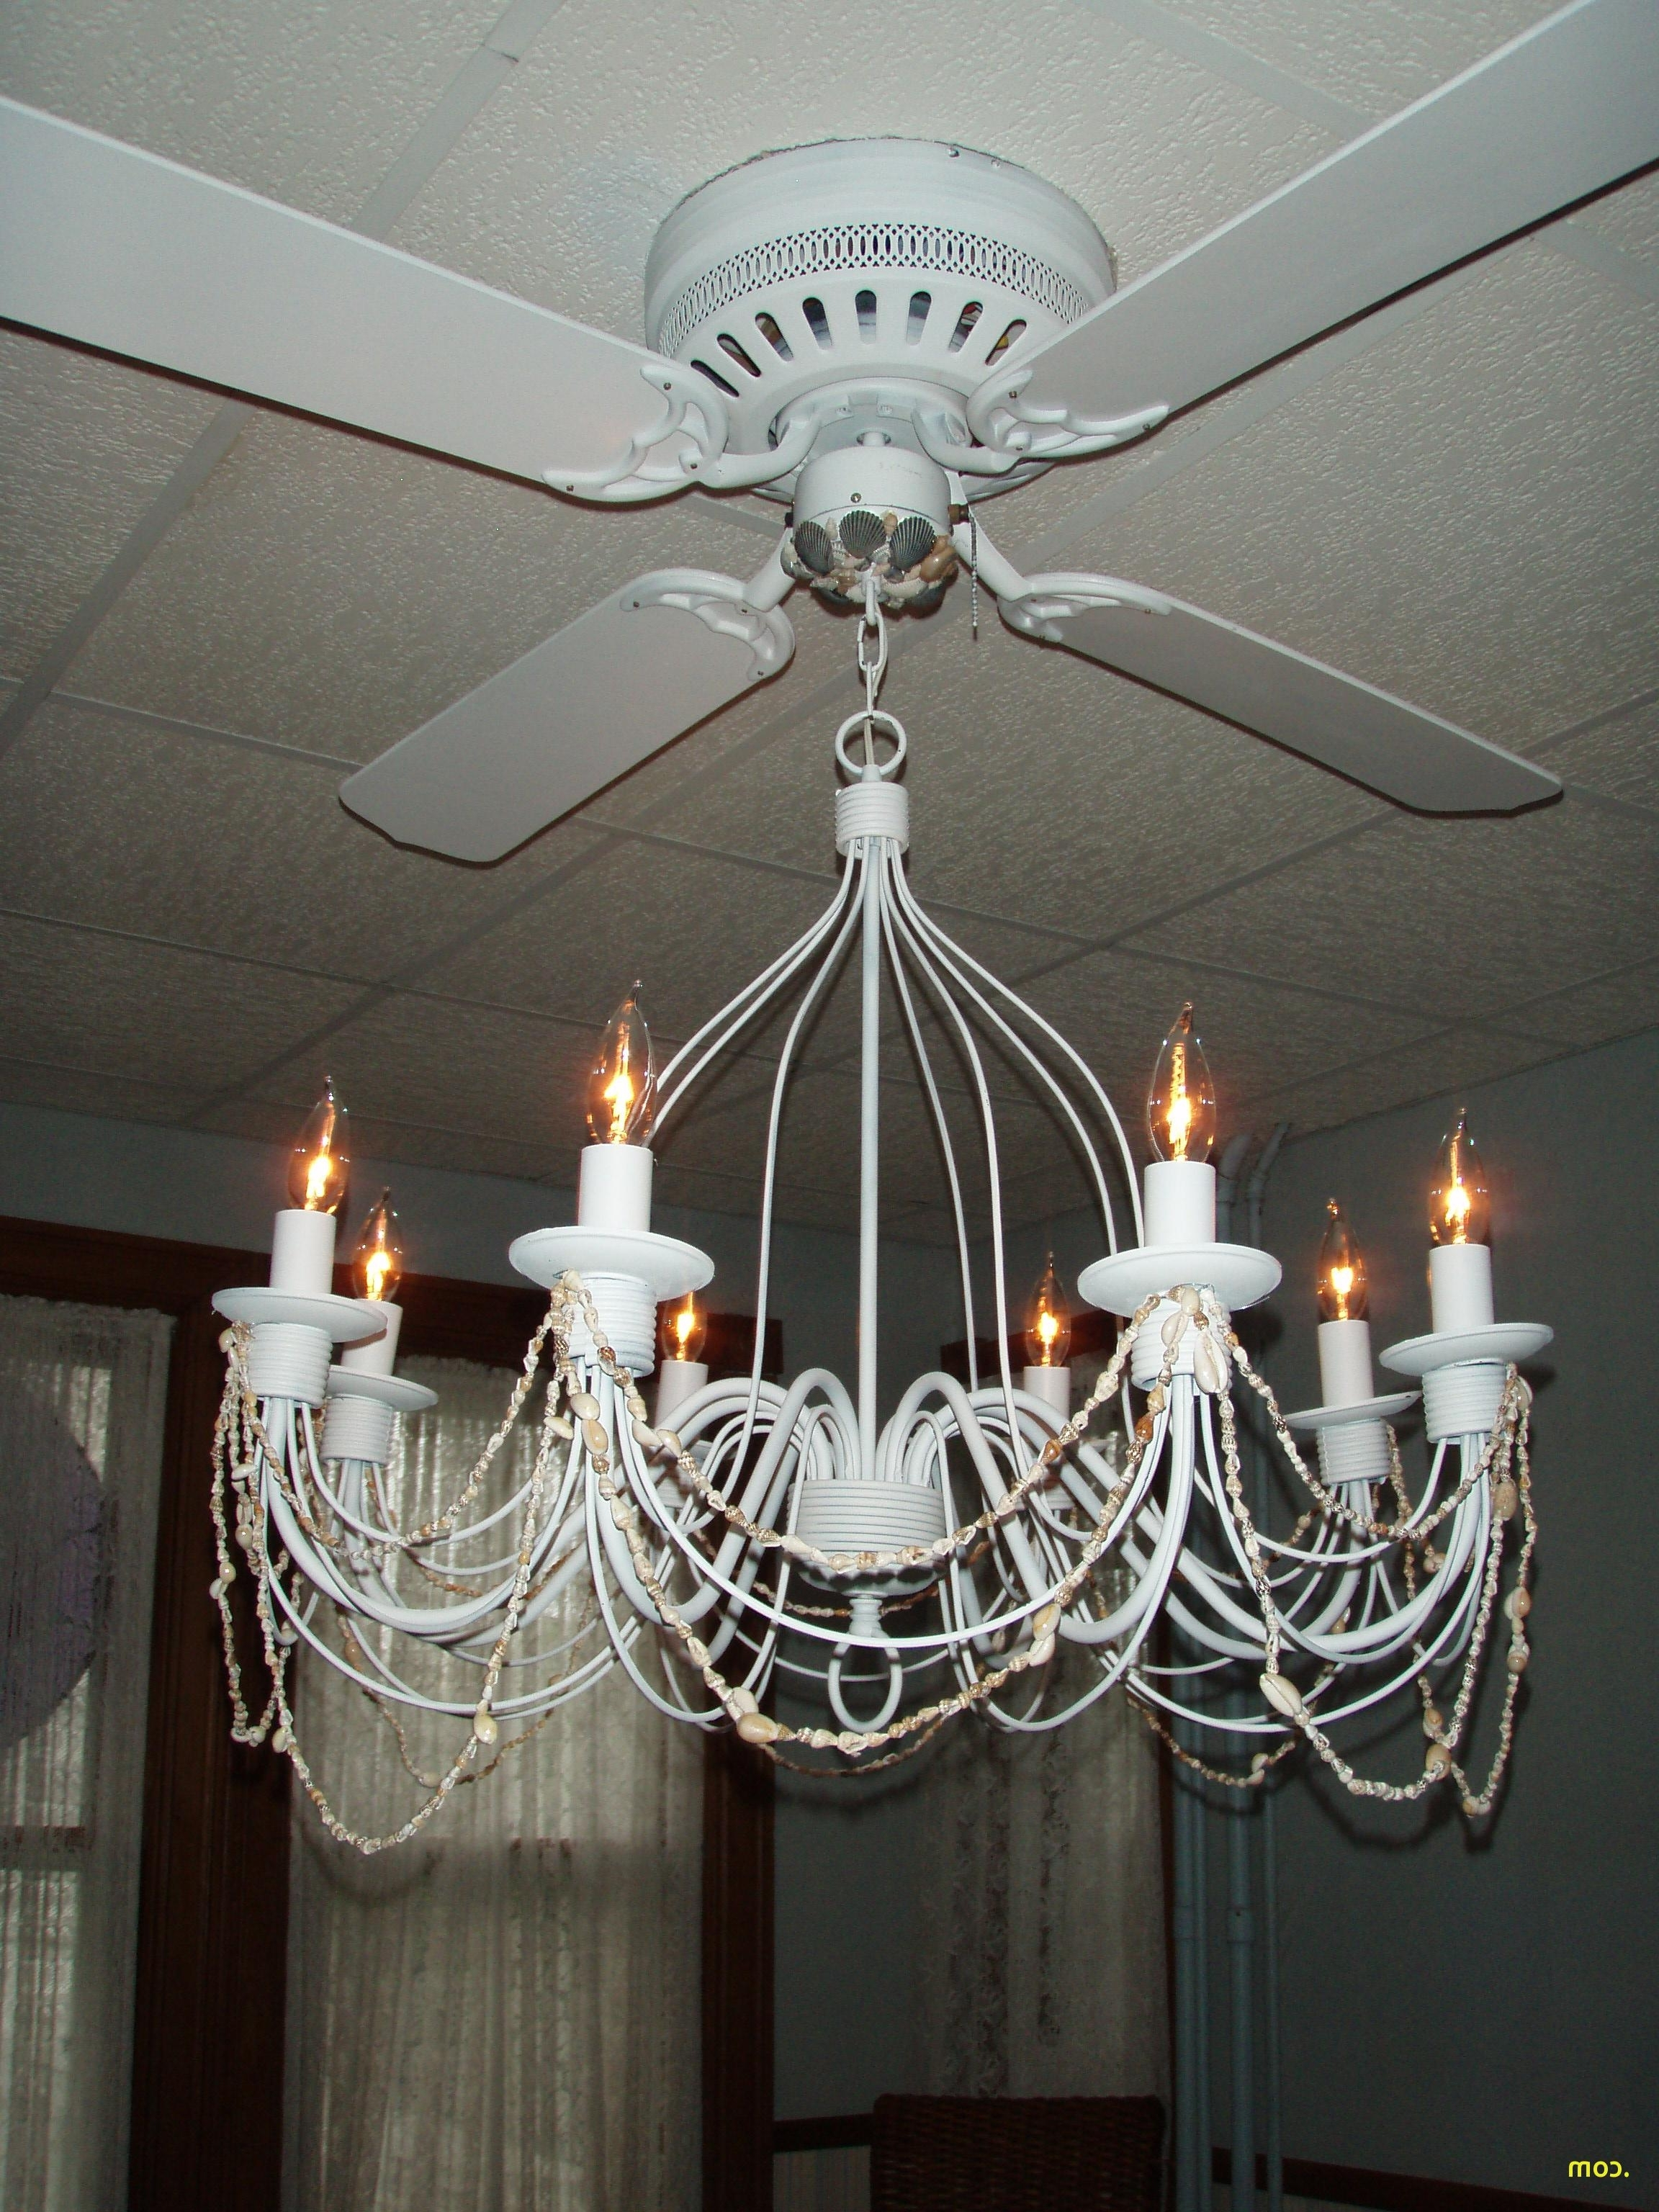 Furniture : Candelier Ceiling Fan Elegant Chandelier Light Fixtures Within Well Known Chandelier Light Fixture For Ceiling Fan (View 17 of 20)